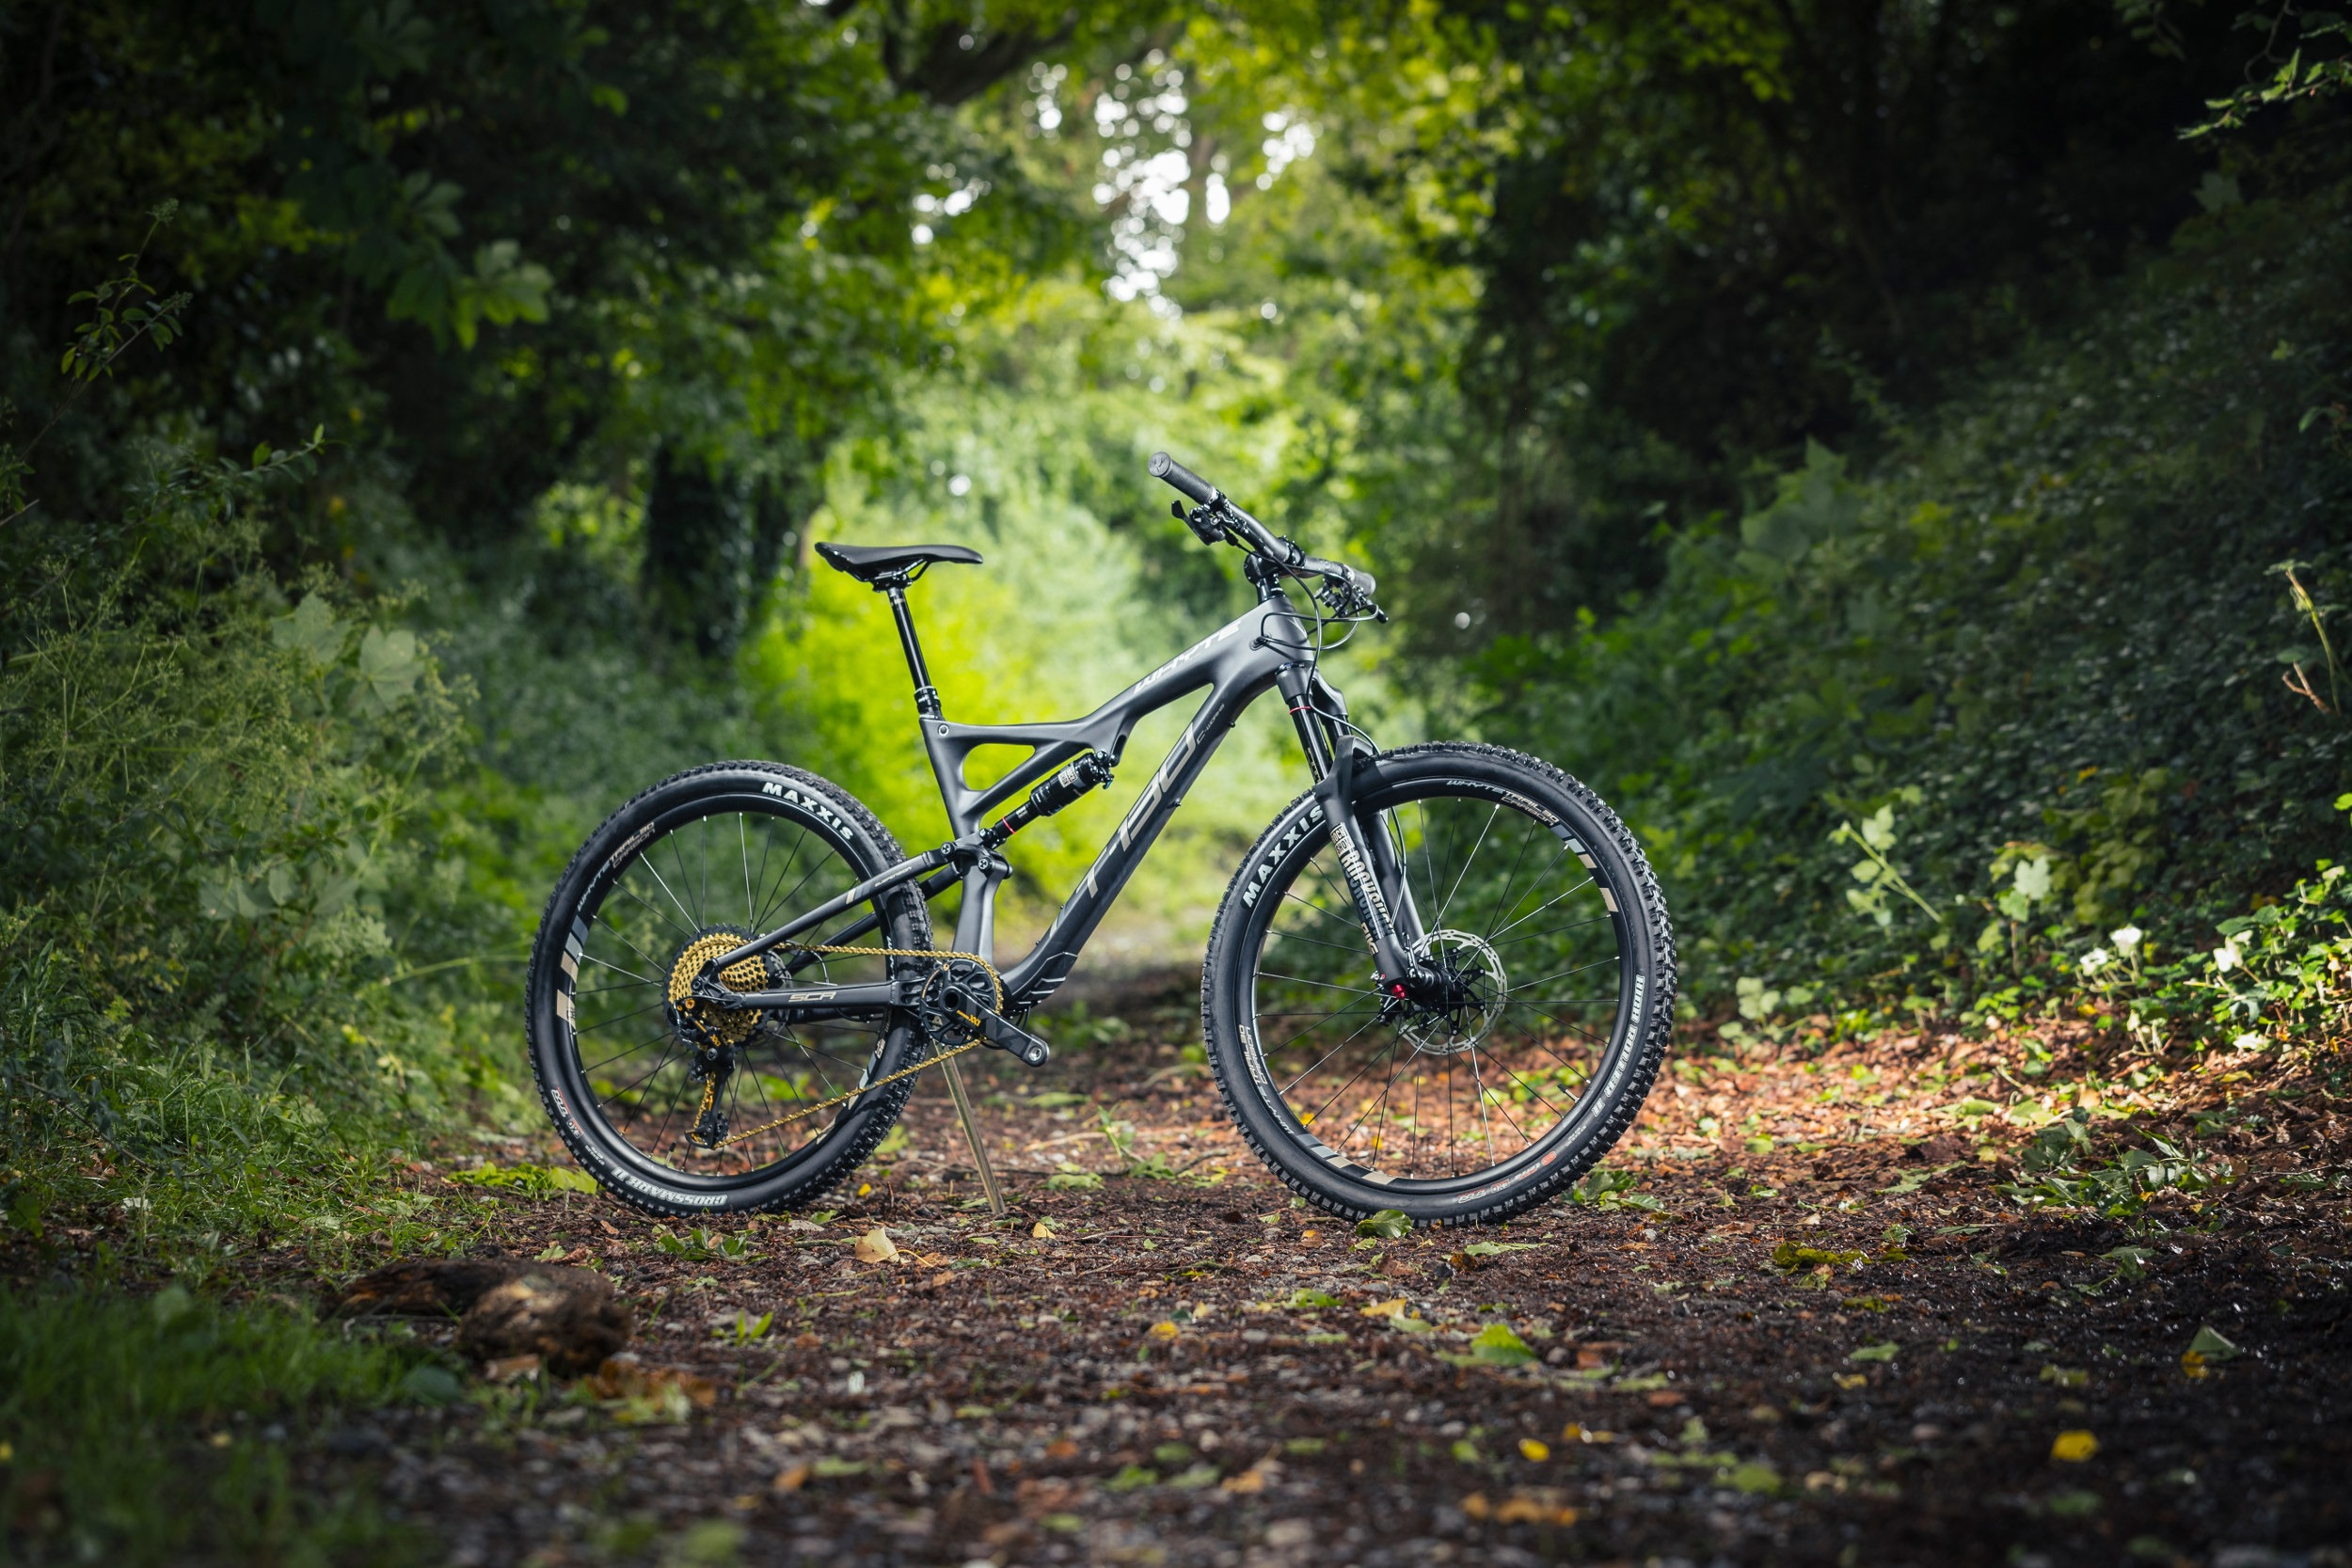 NEW-2018 Whyte Bikes Line-up  8c00abfd61c1f